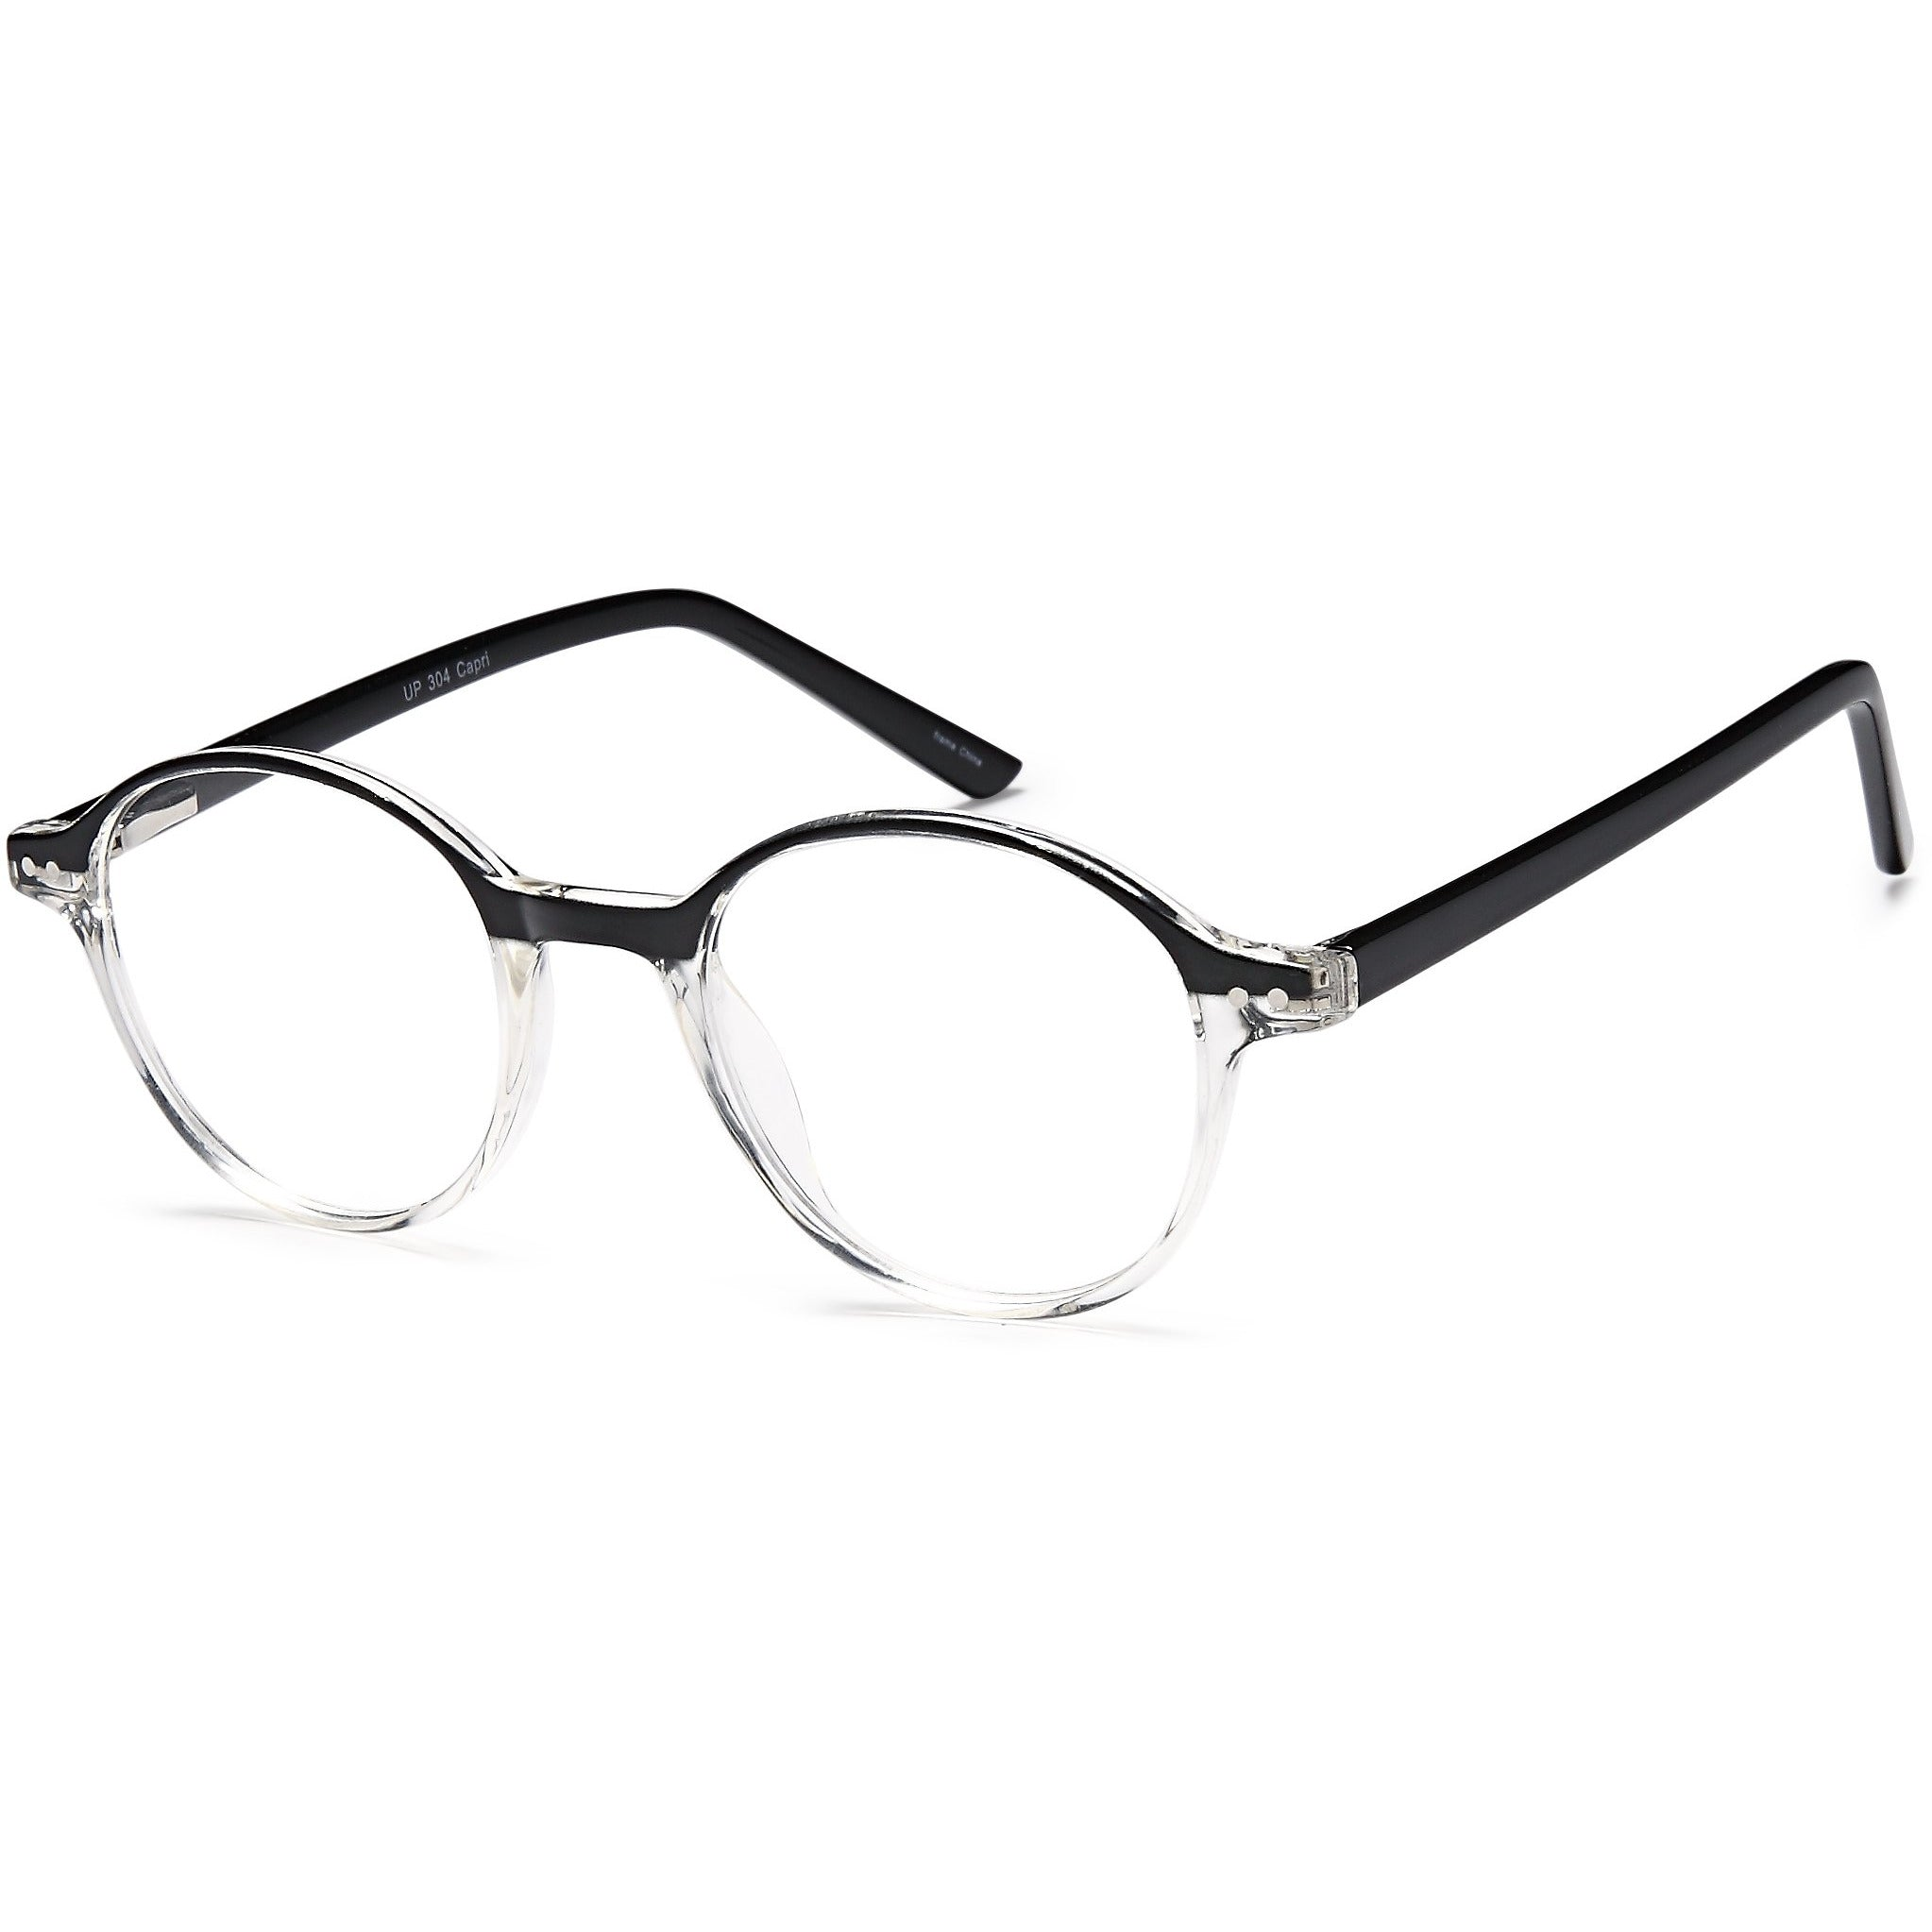 2U Prescription Glasses UP 304 Optical Eyeglasses Frame